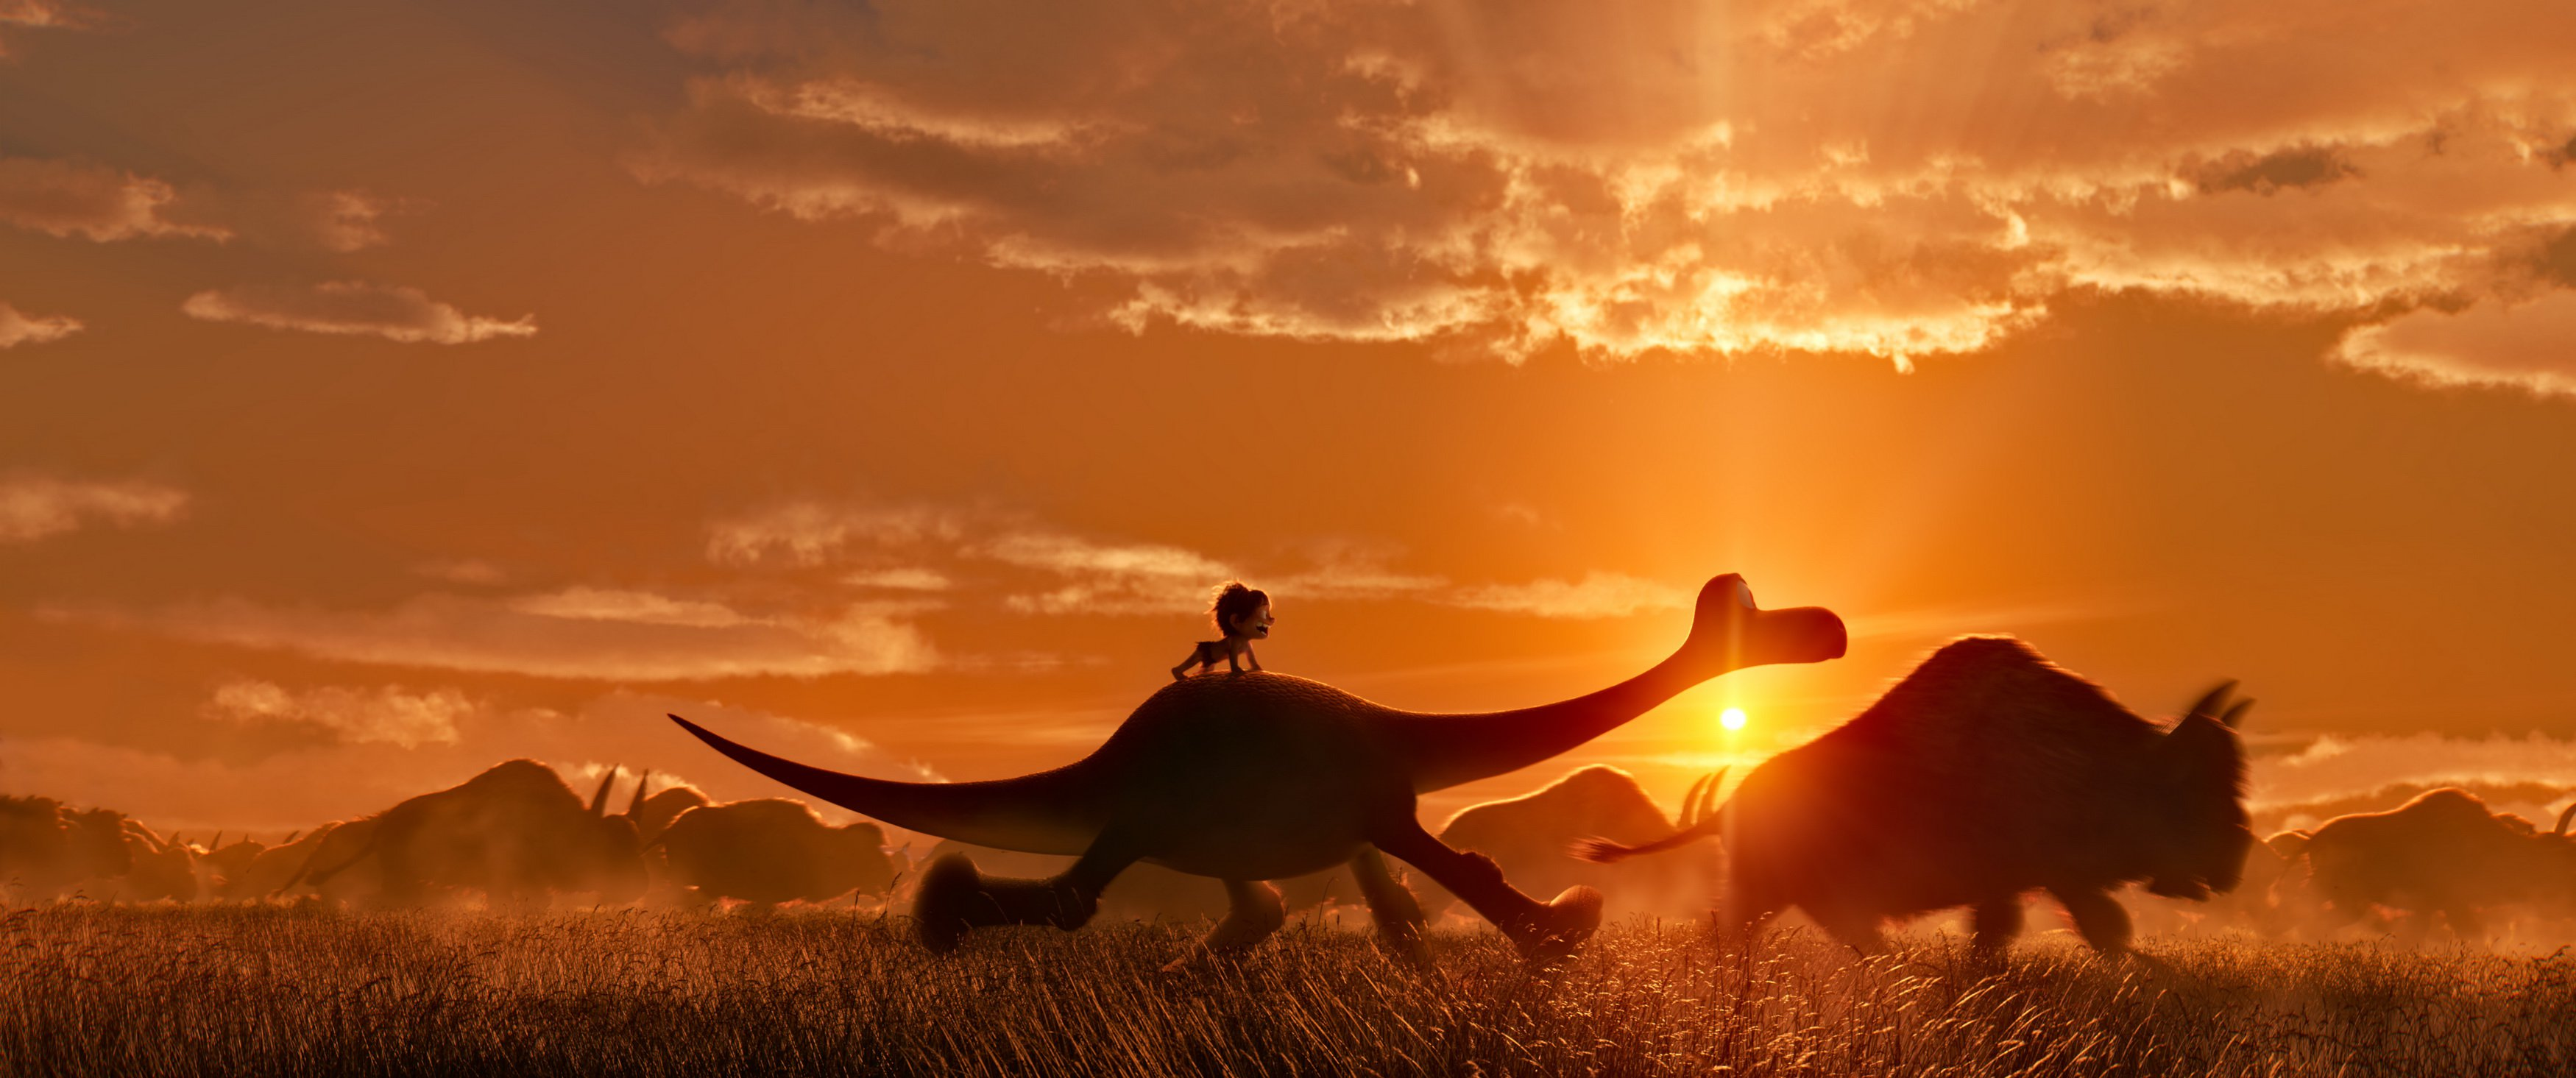 Good Dinosaur Interviews - Image 1